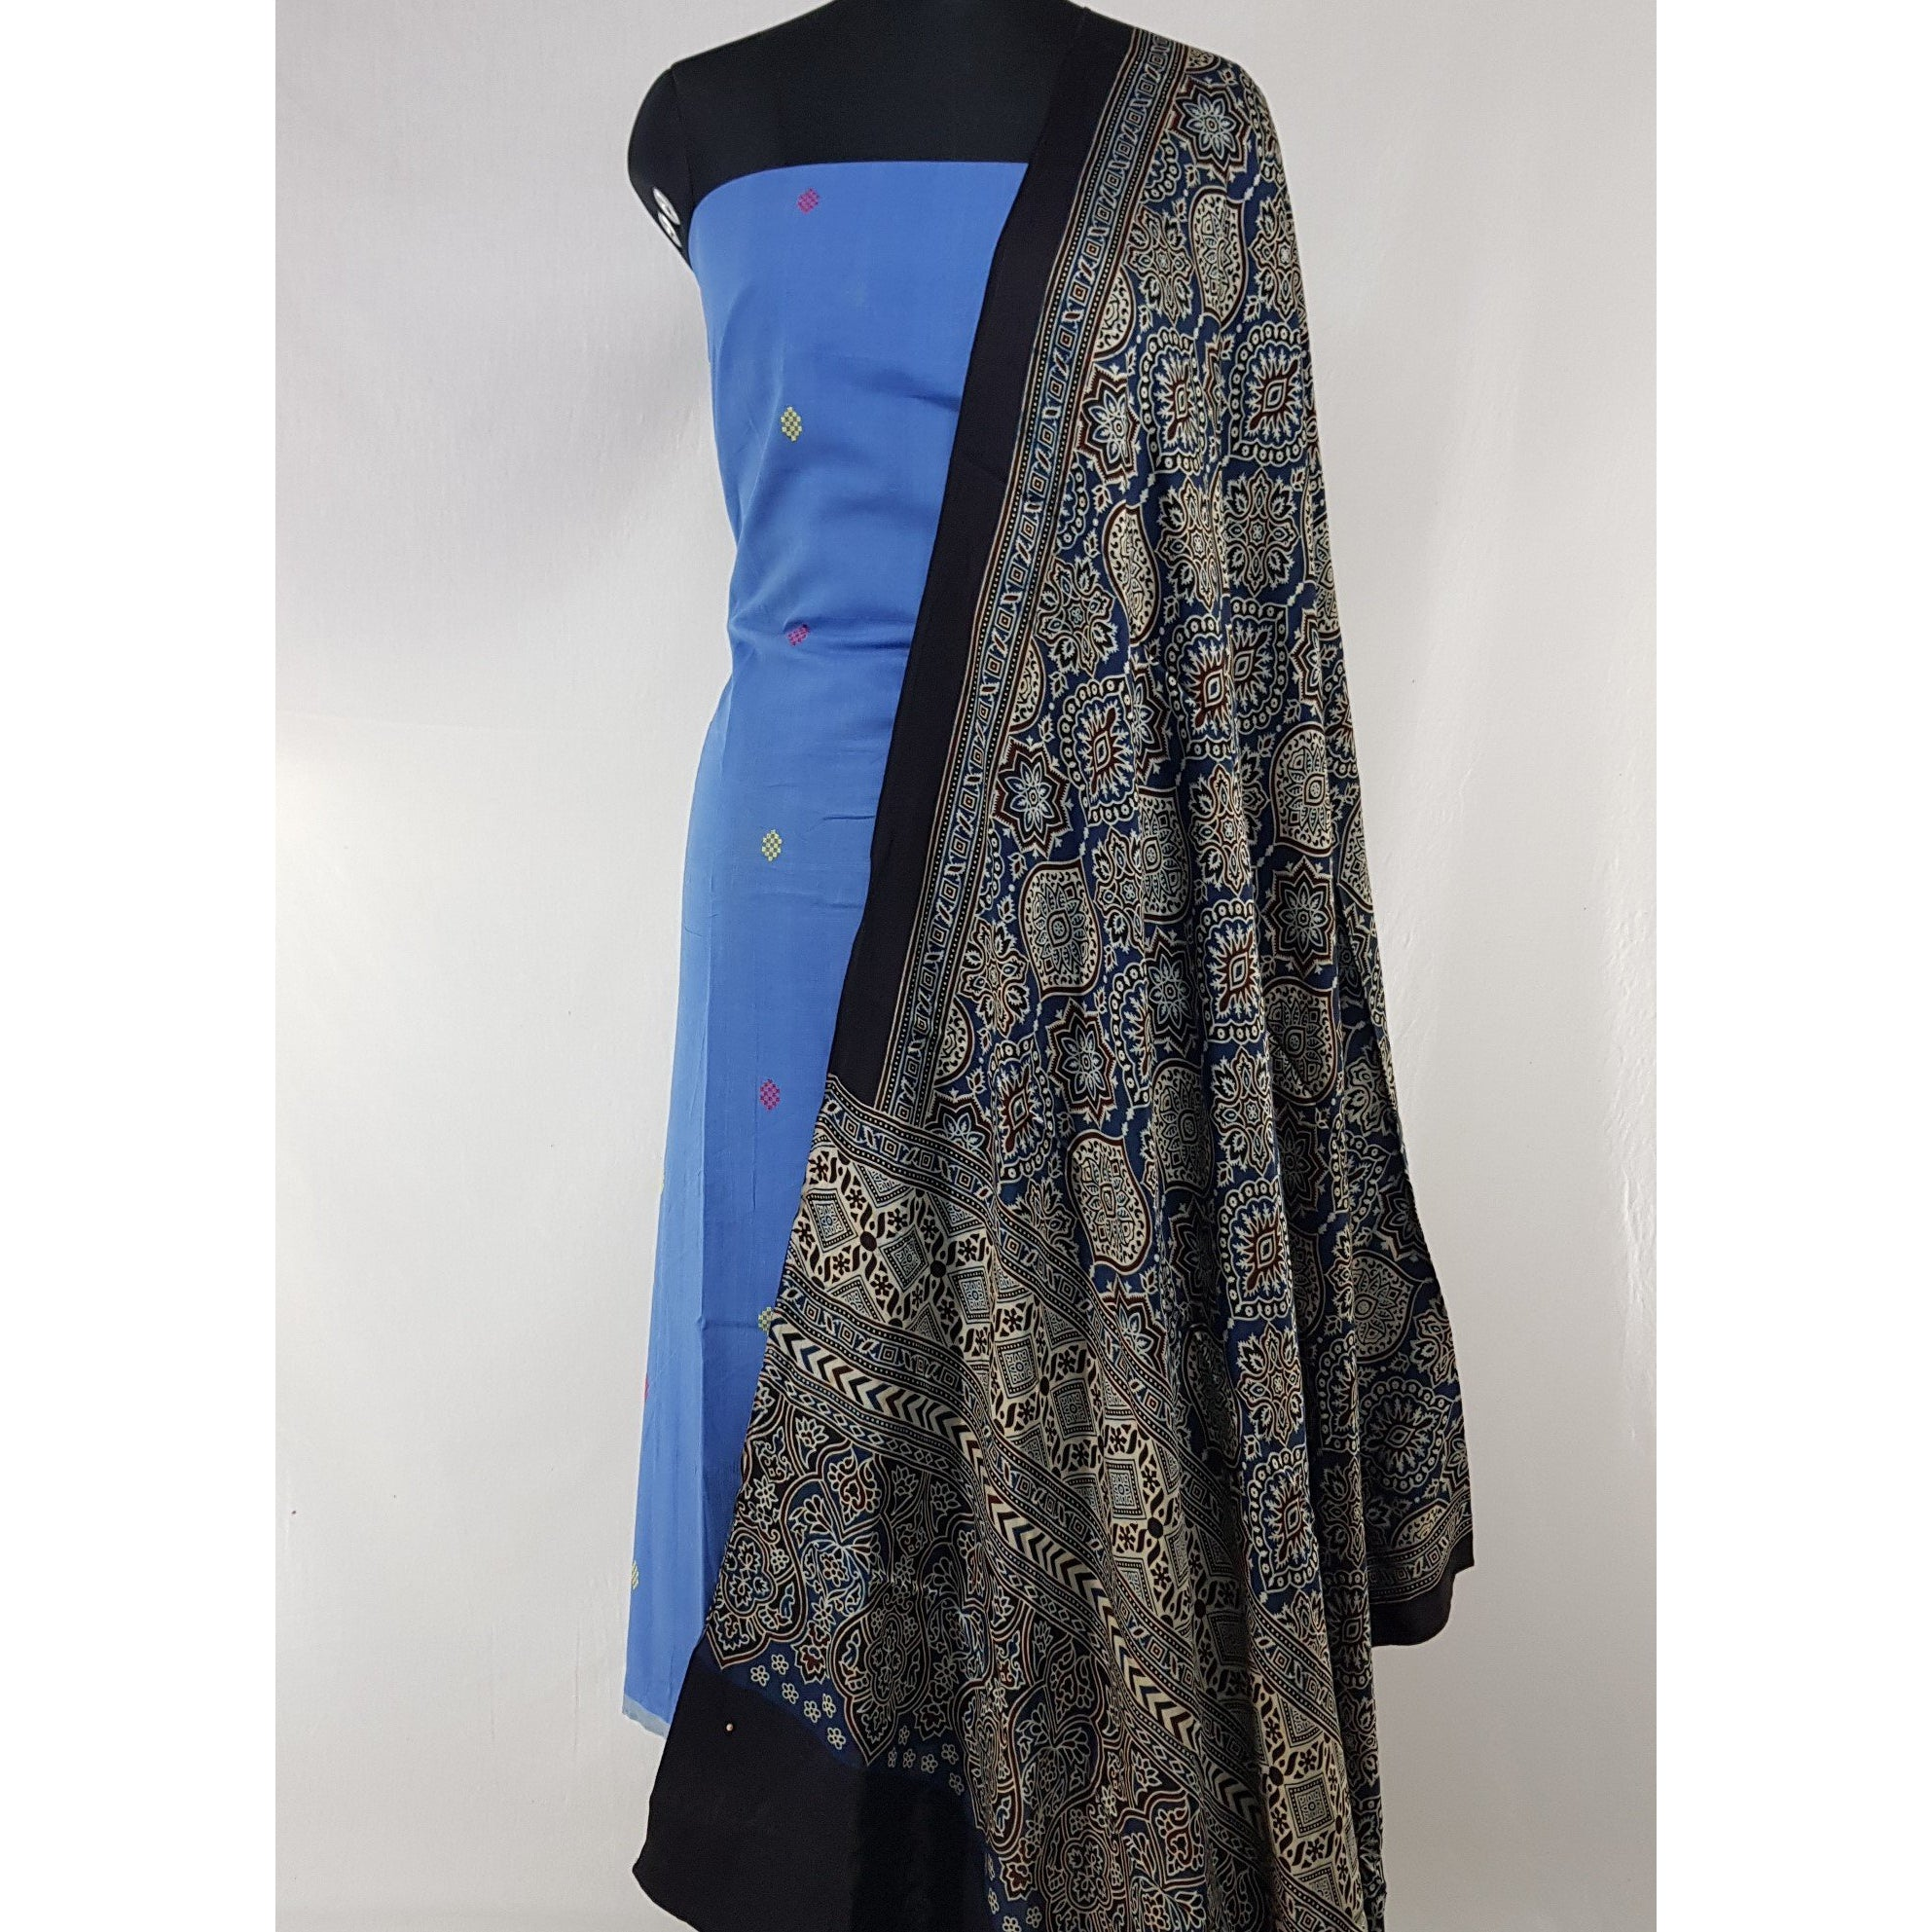 Hand printed natural dyed Ajrakh modal silk dupatta with khadi jamdani butta cotton top / Salwar Set - Vinshika